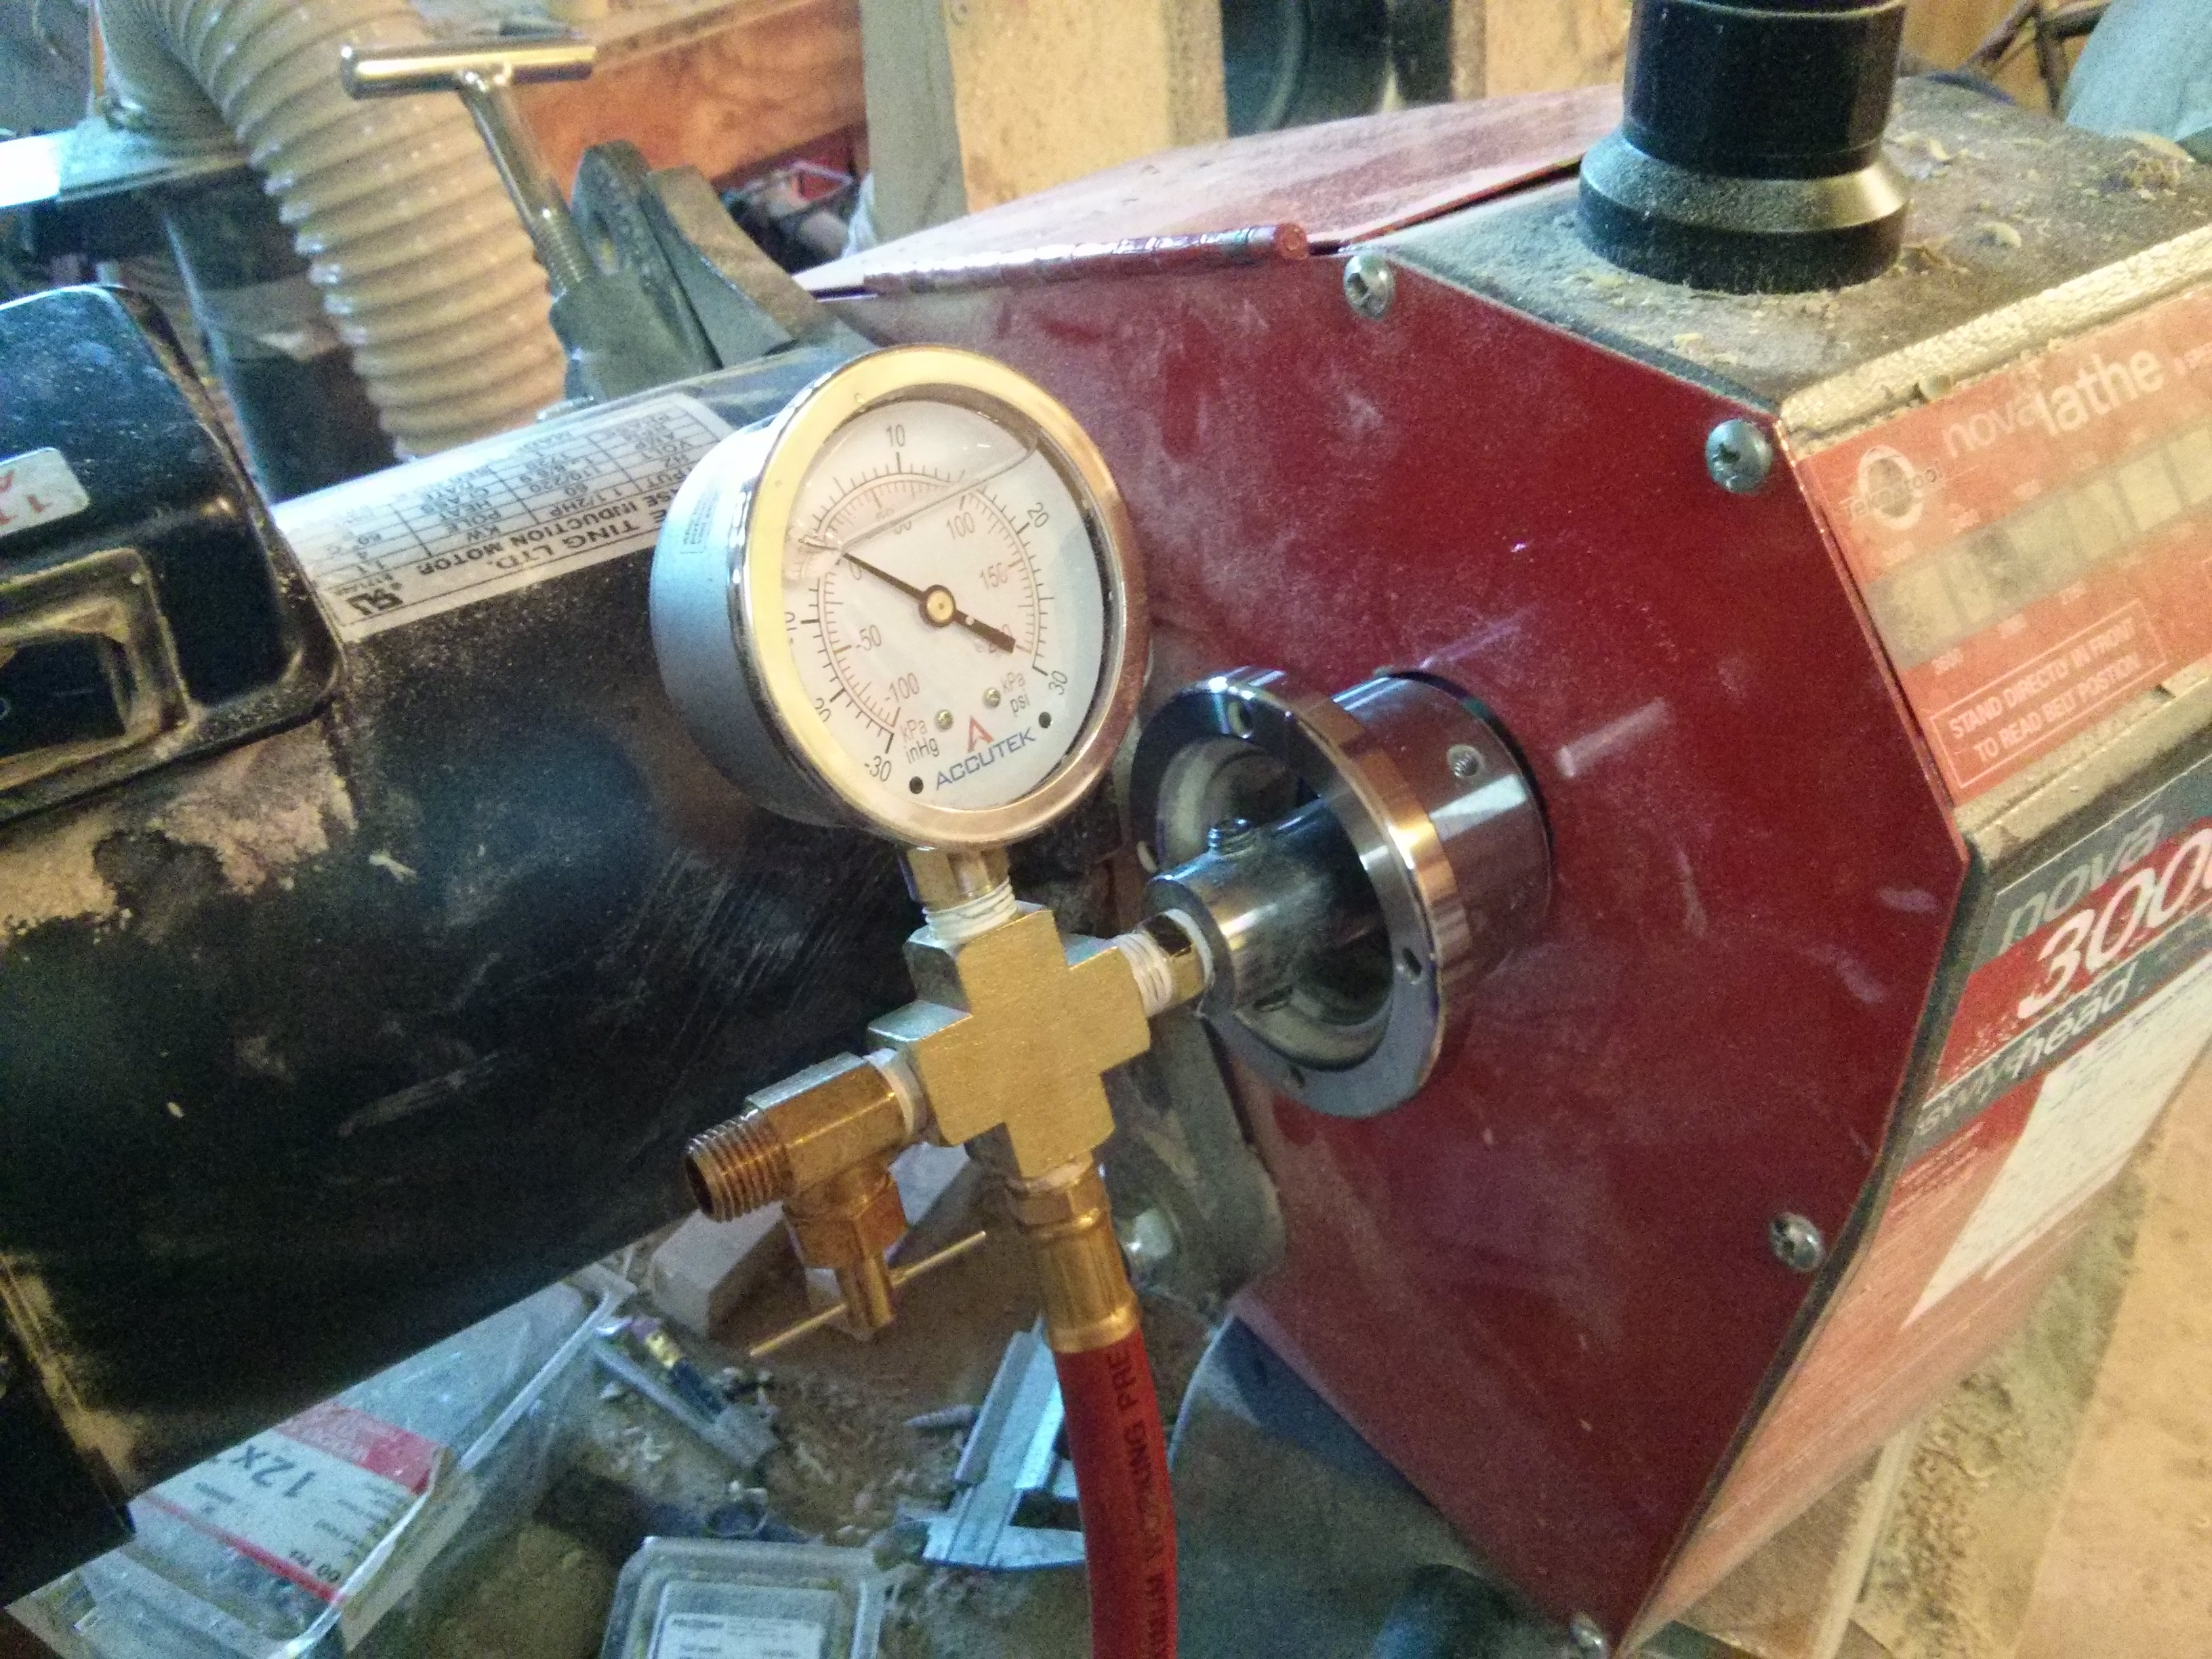 Gauge assembly on lathe